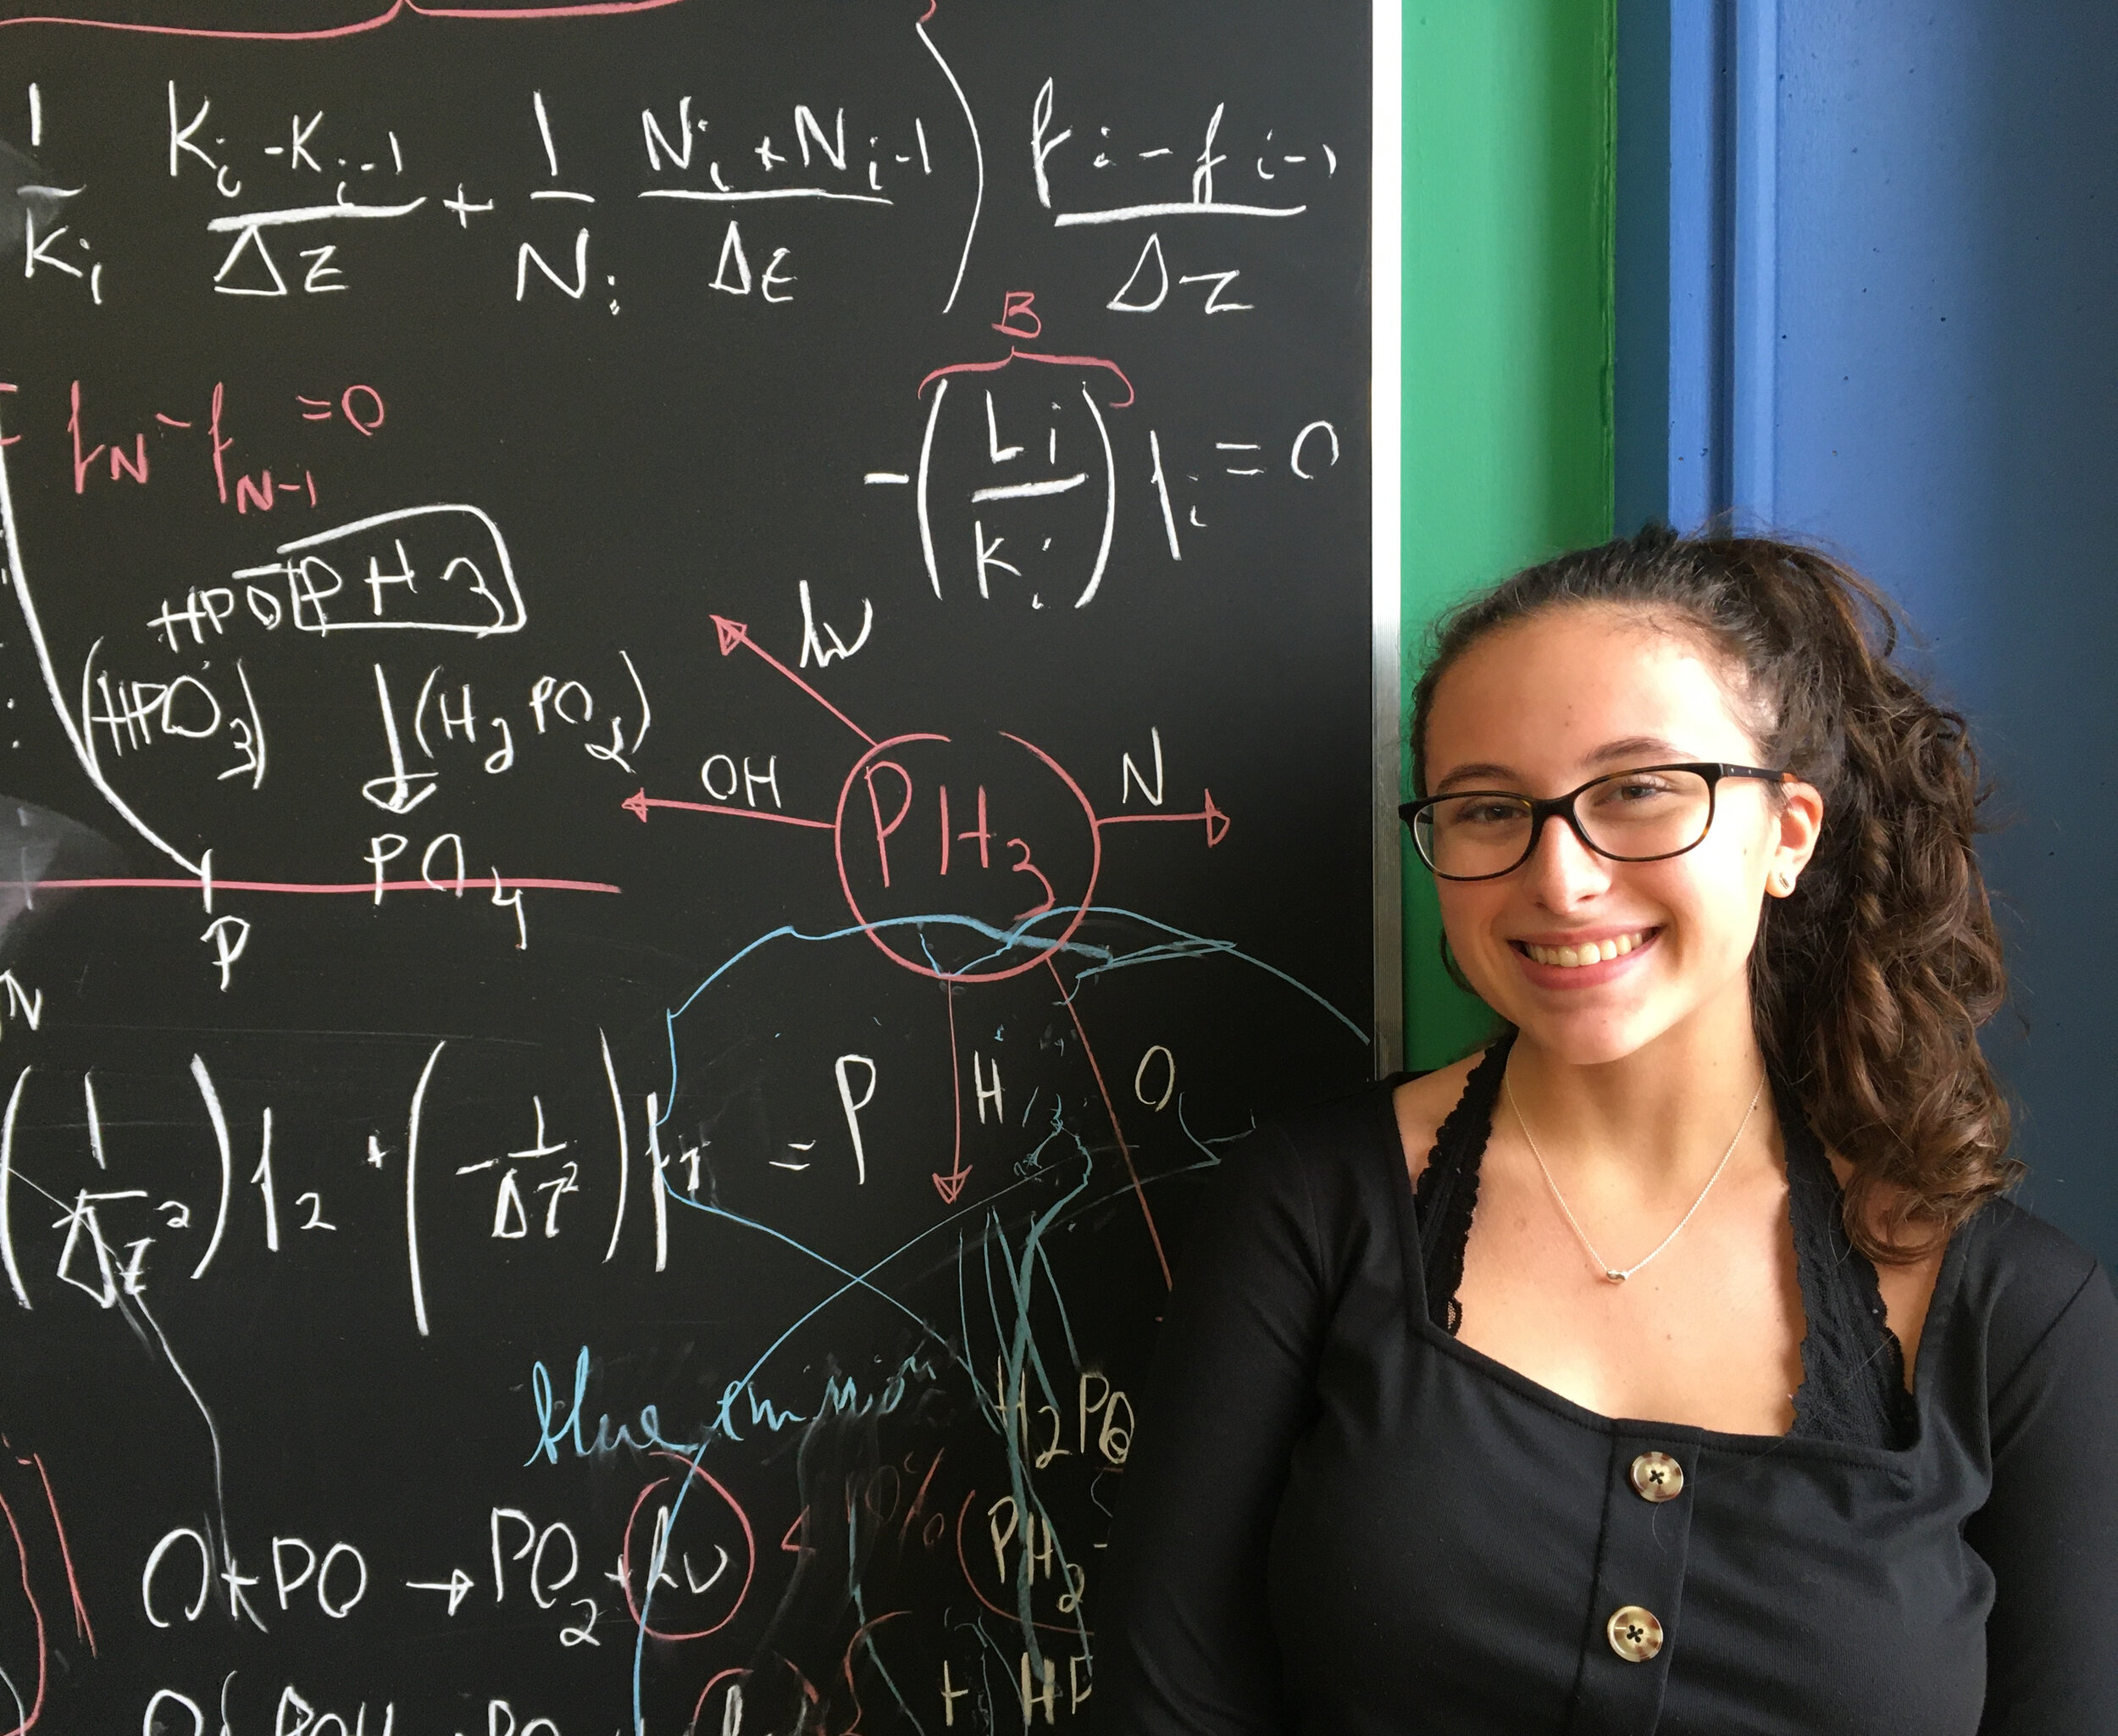 Cara Pesciotta - Cara is currently working with Asma to create the most accurate high-temperature spectra of phosphine.